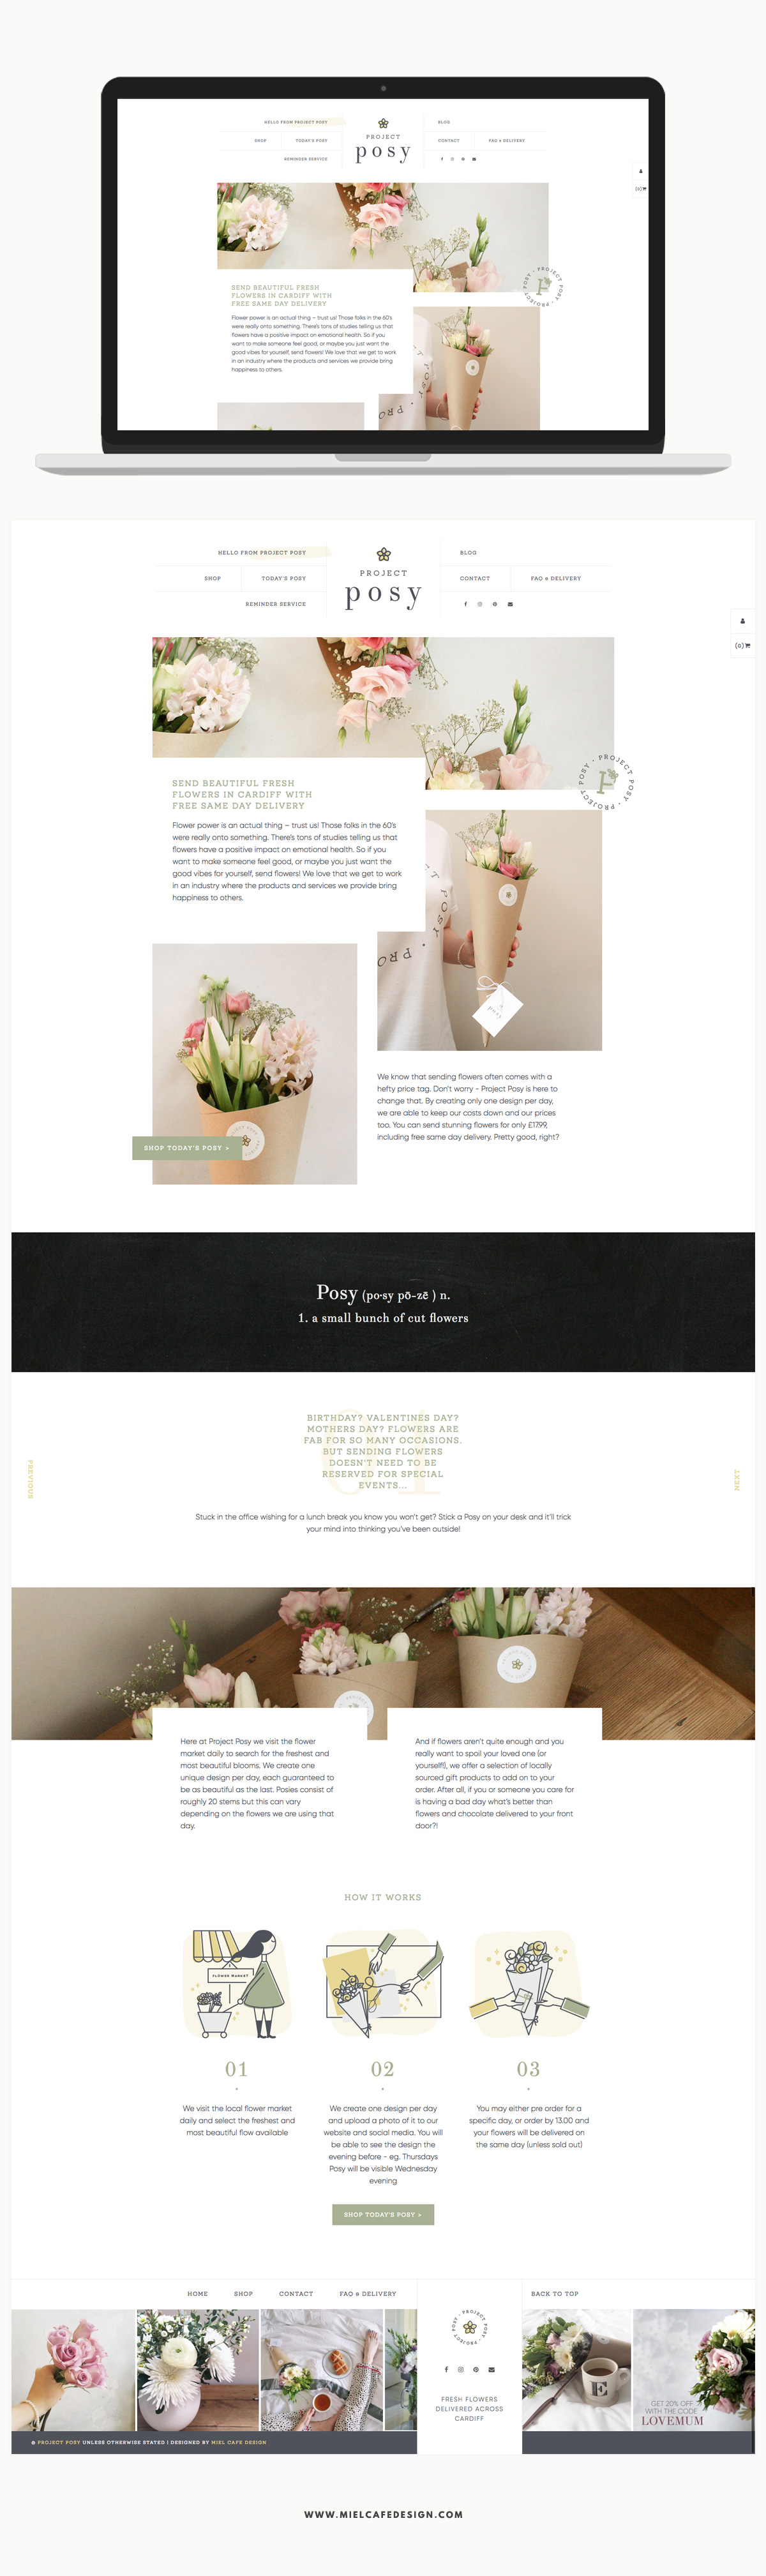 Branding for flower delivery service Project Posy Web Design